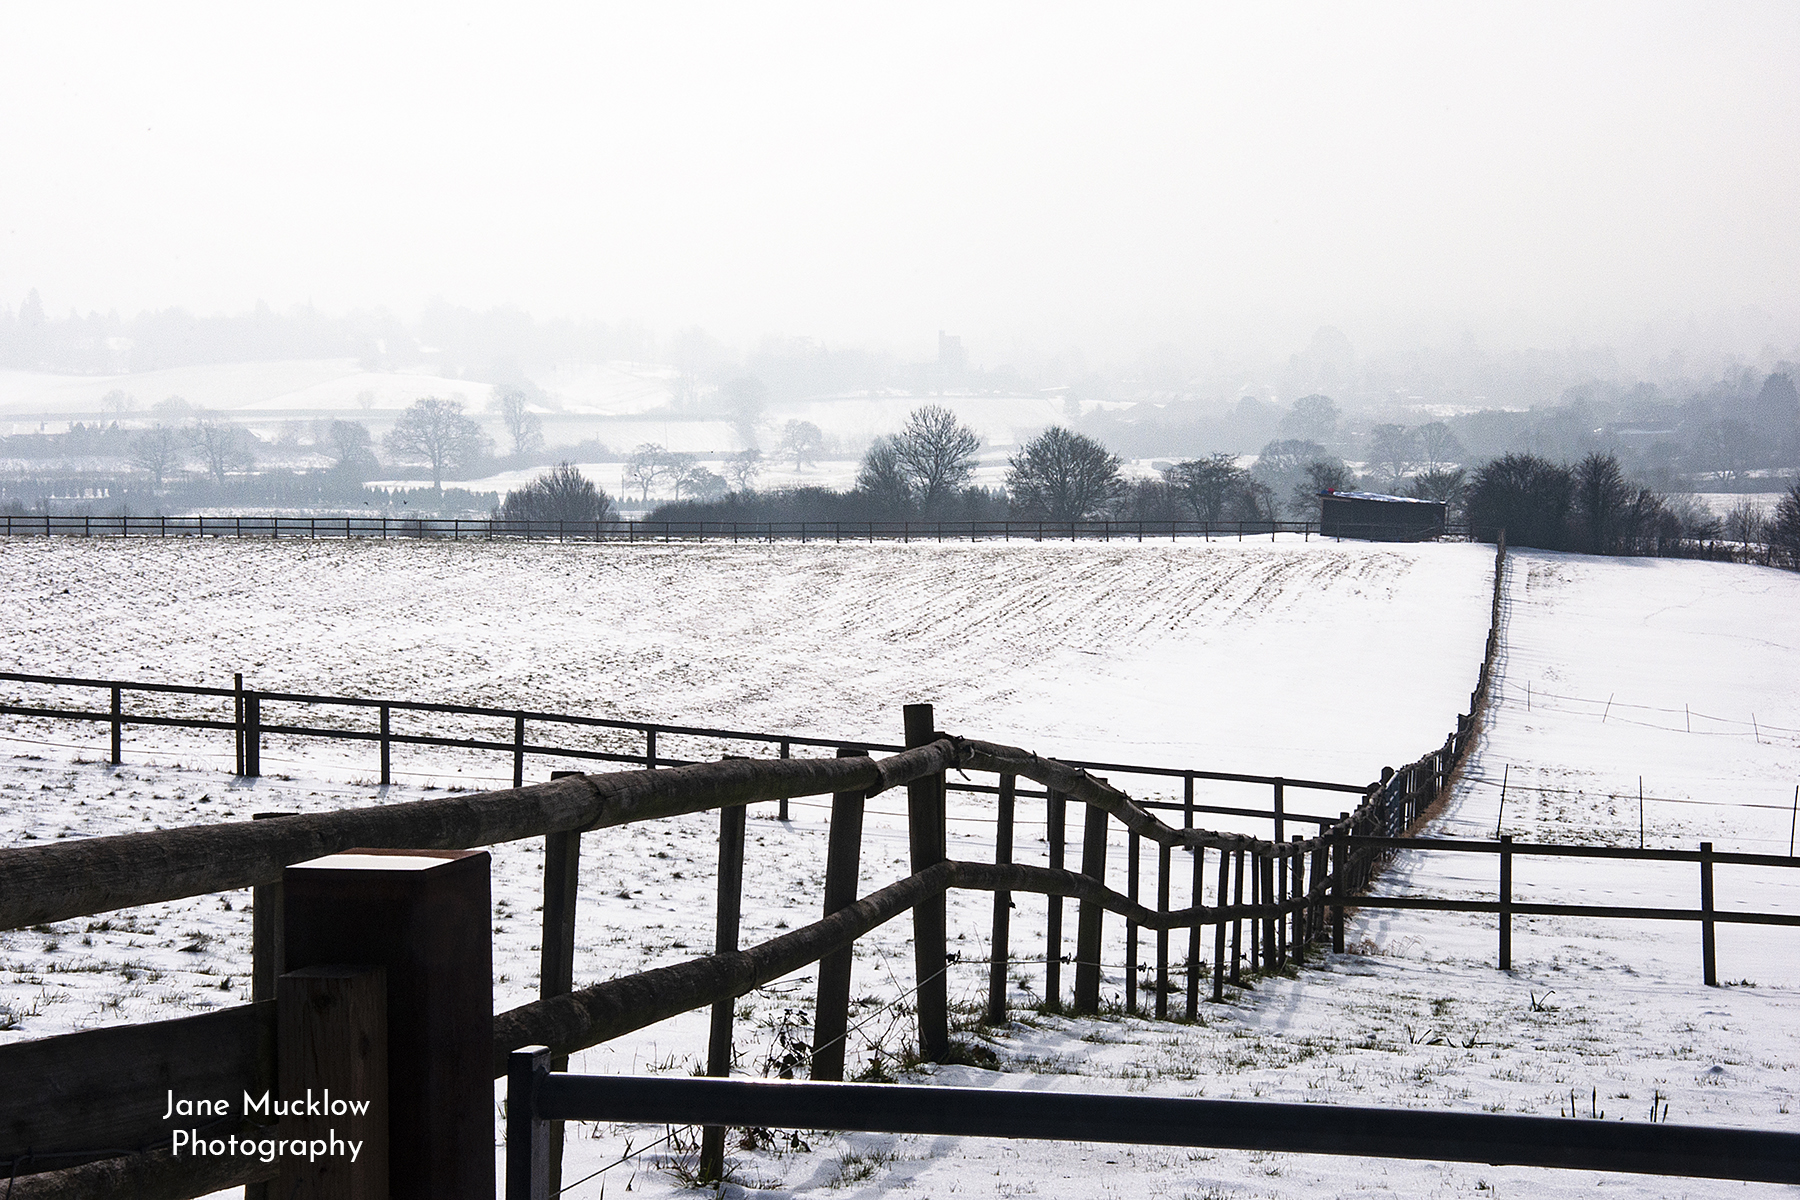 Photo by Jane Mucklow, snowy view from Kemsing to Seal and Sevenoaks, Kent